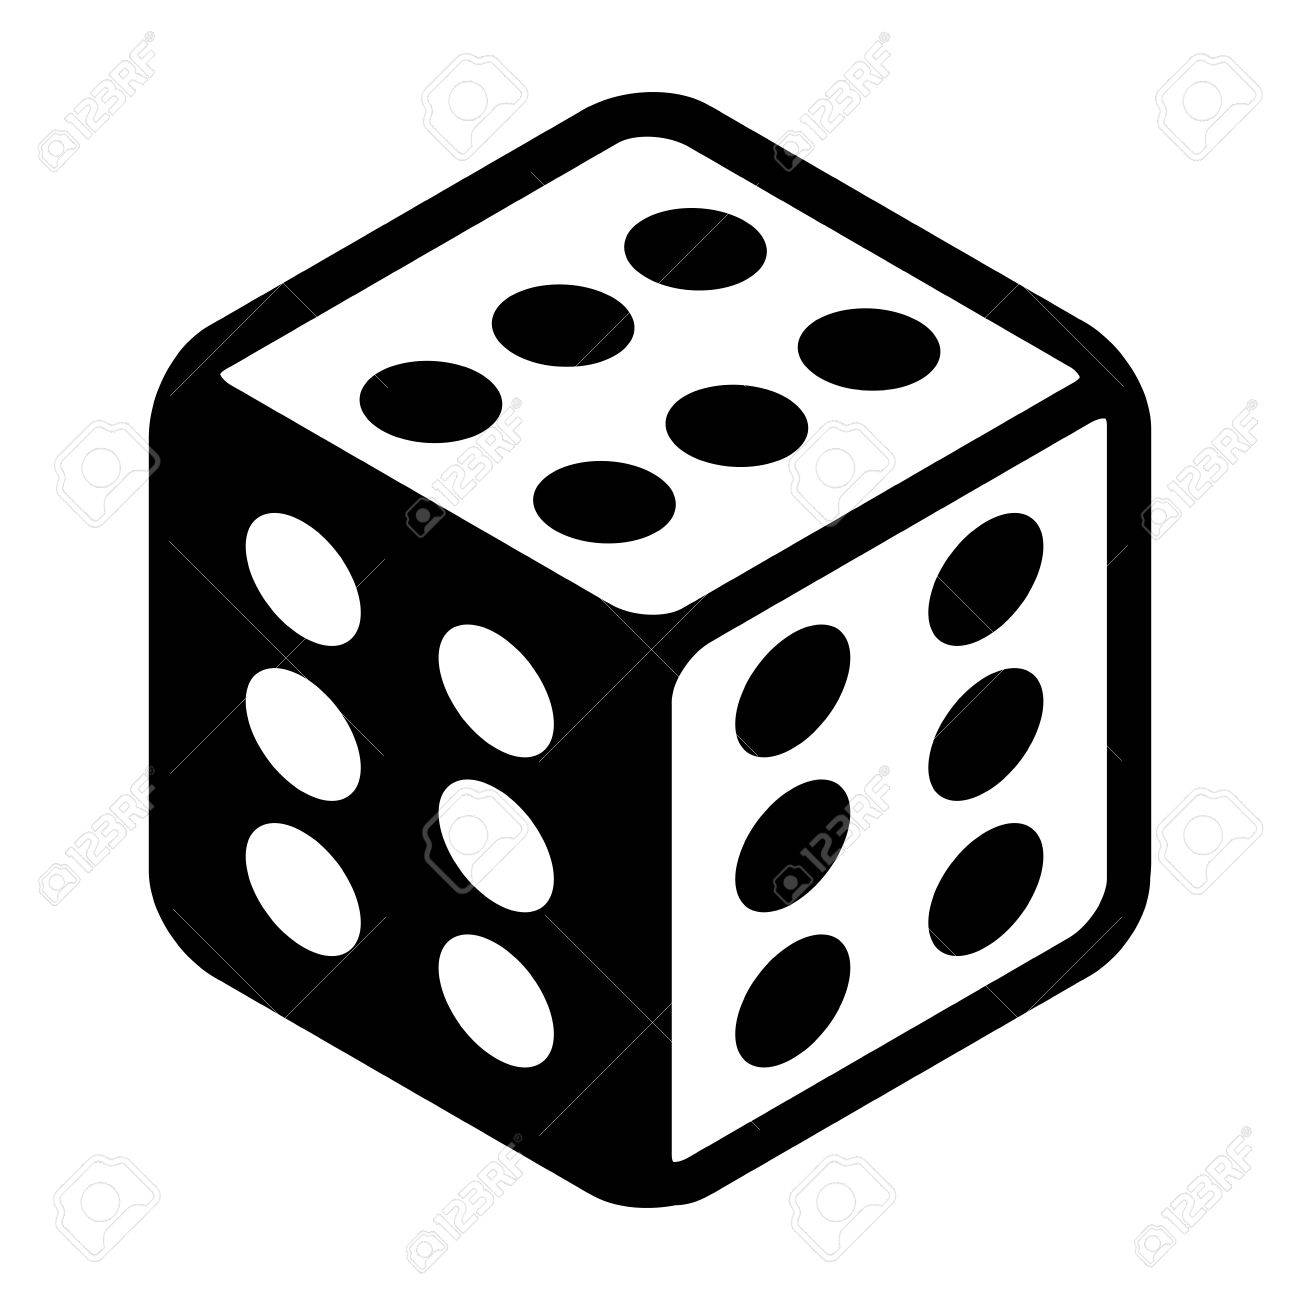 Cheat lucky dice with six spots on every side  Great luck symbol